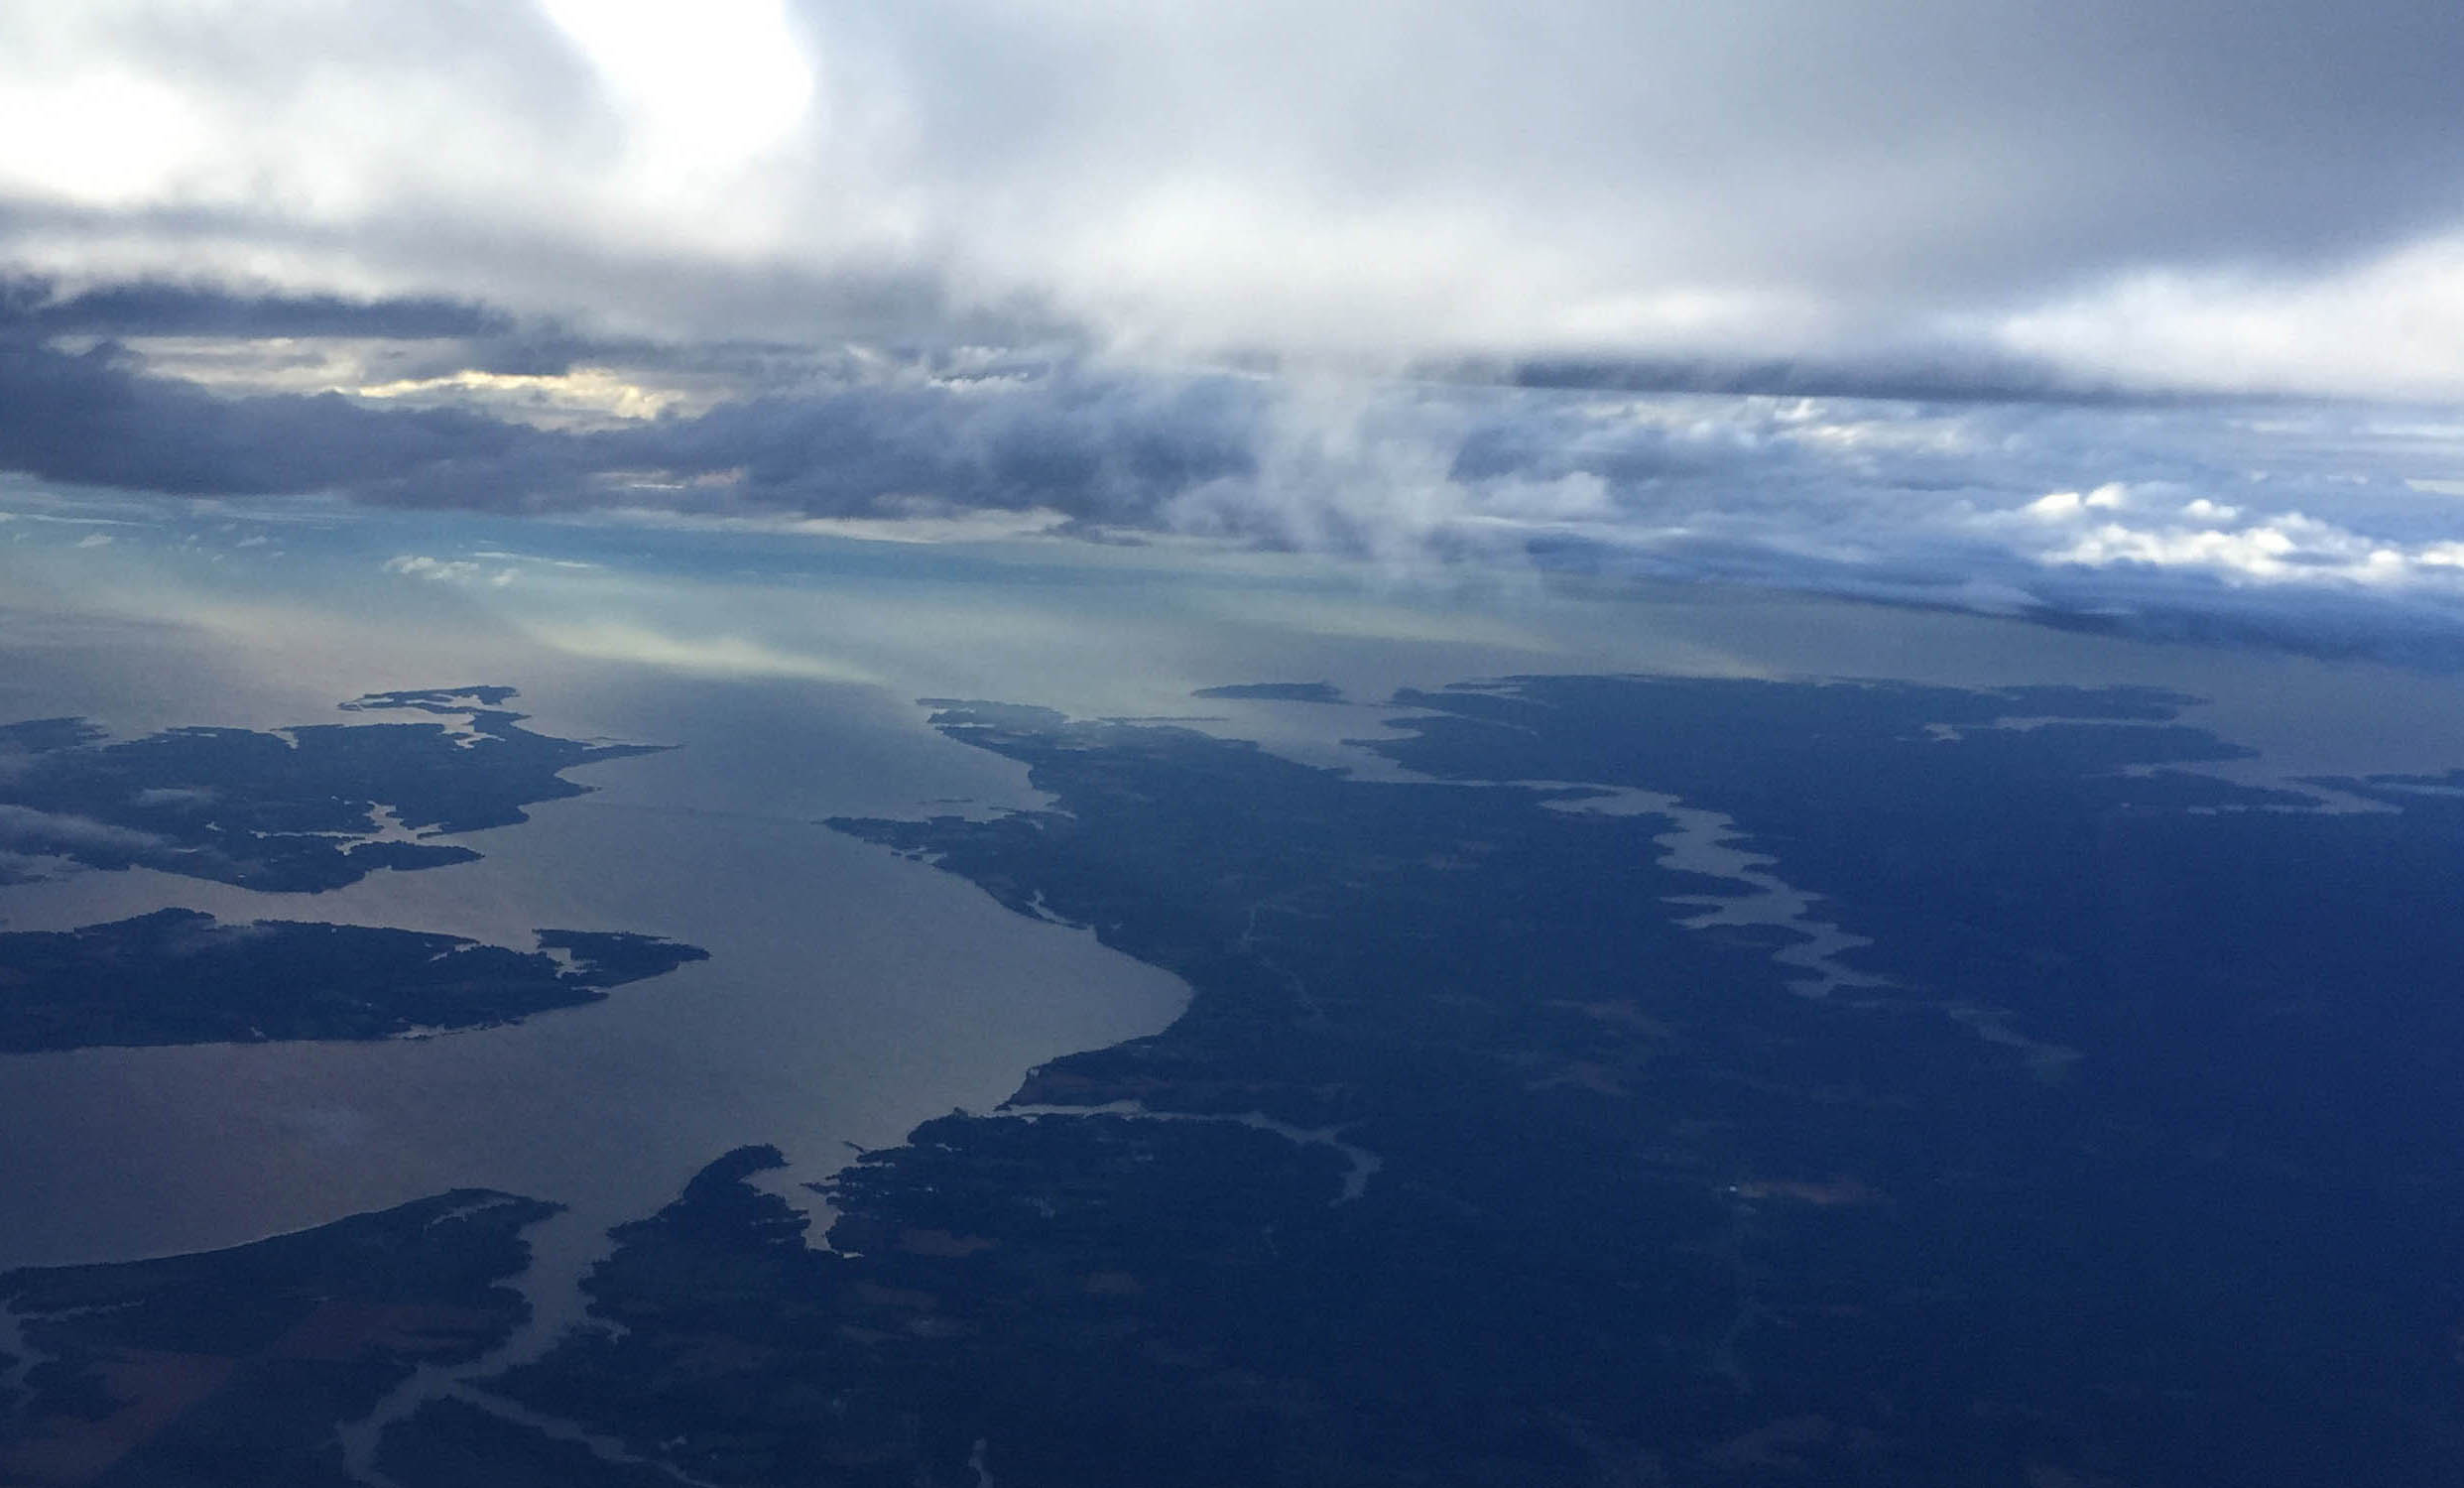 Mouth of the Rappahannock River - The Geology of Virginia